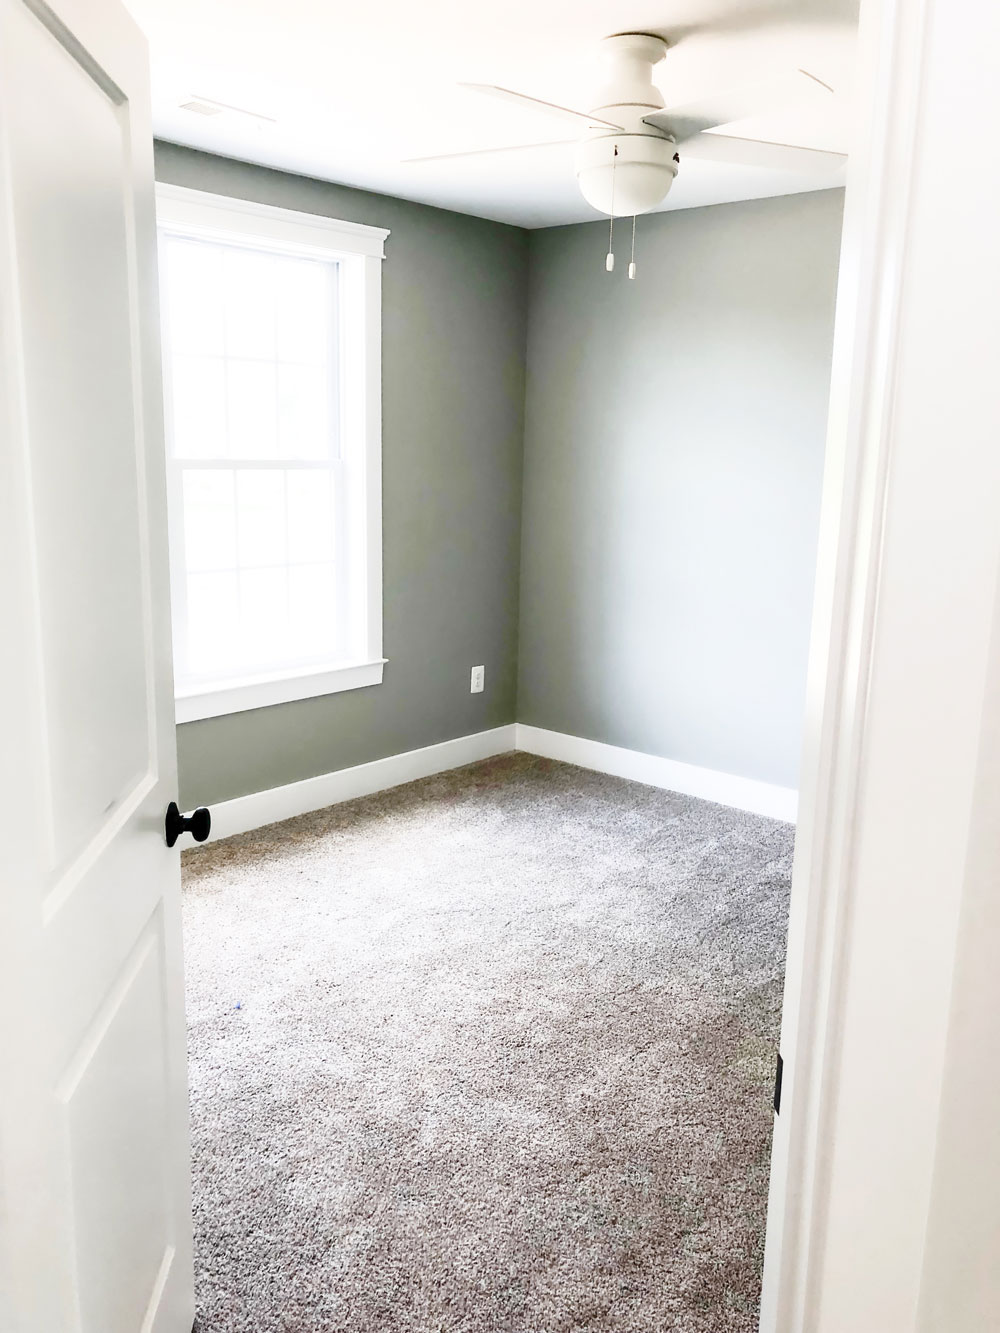 Custom home tour photos. This photo shows one of the two upper bedrooms. It has gray walls and beige carpet. There is a white ceiling fan as well and a large window.